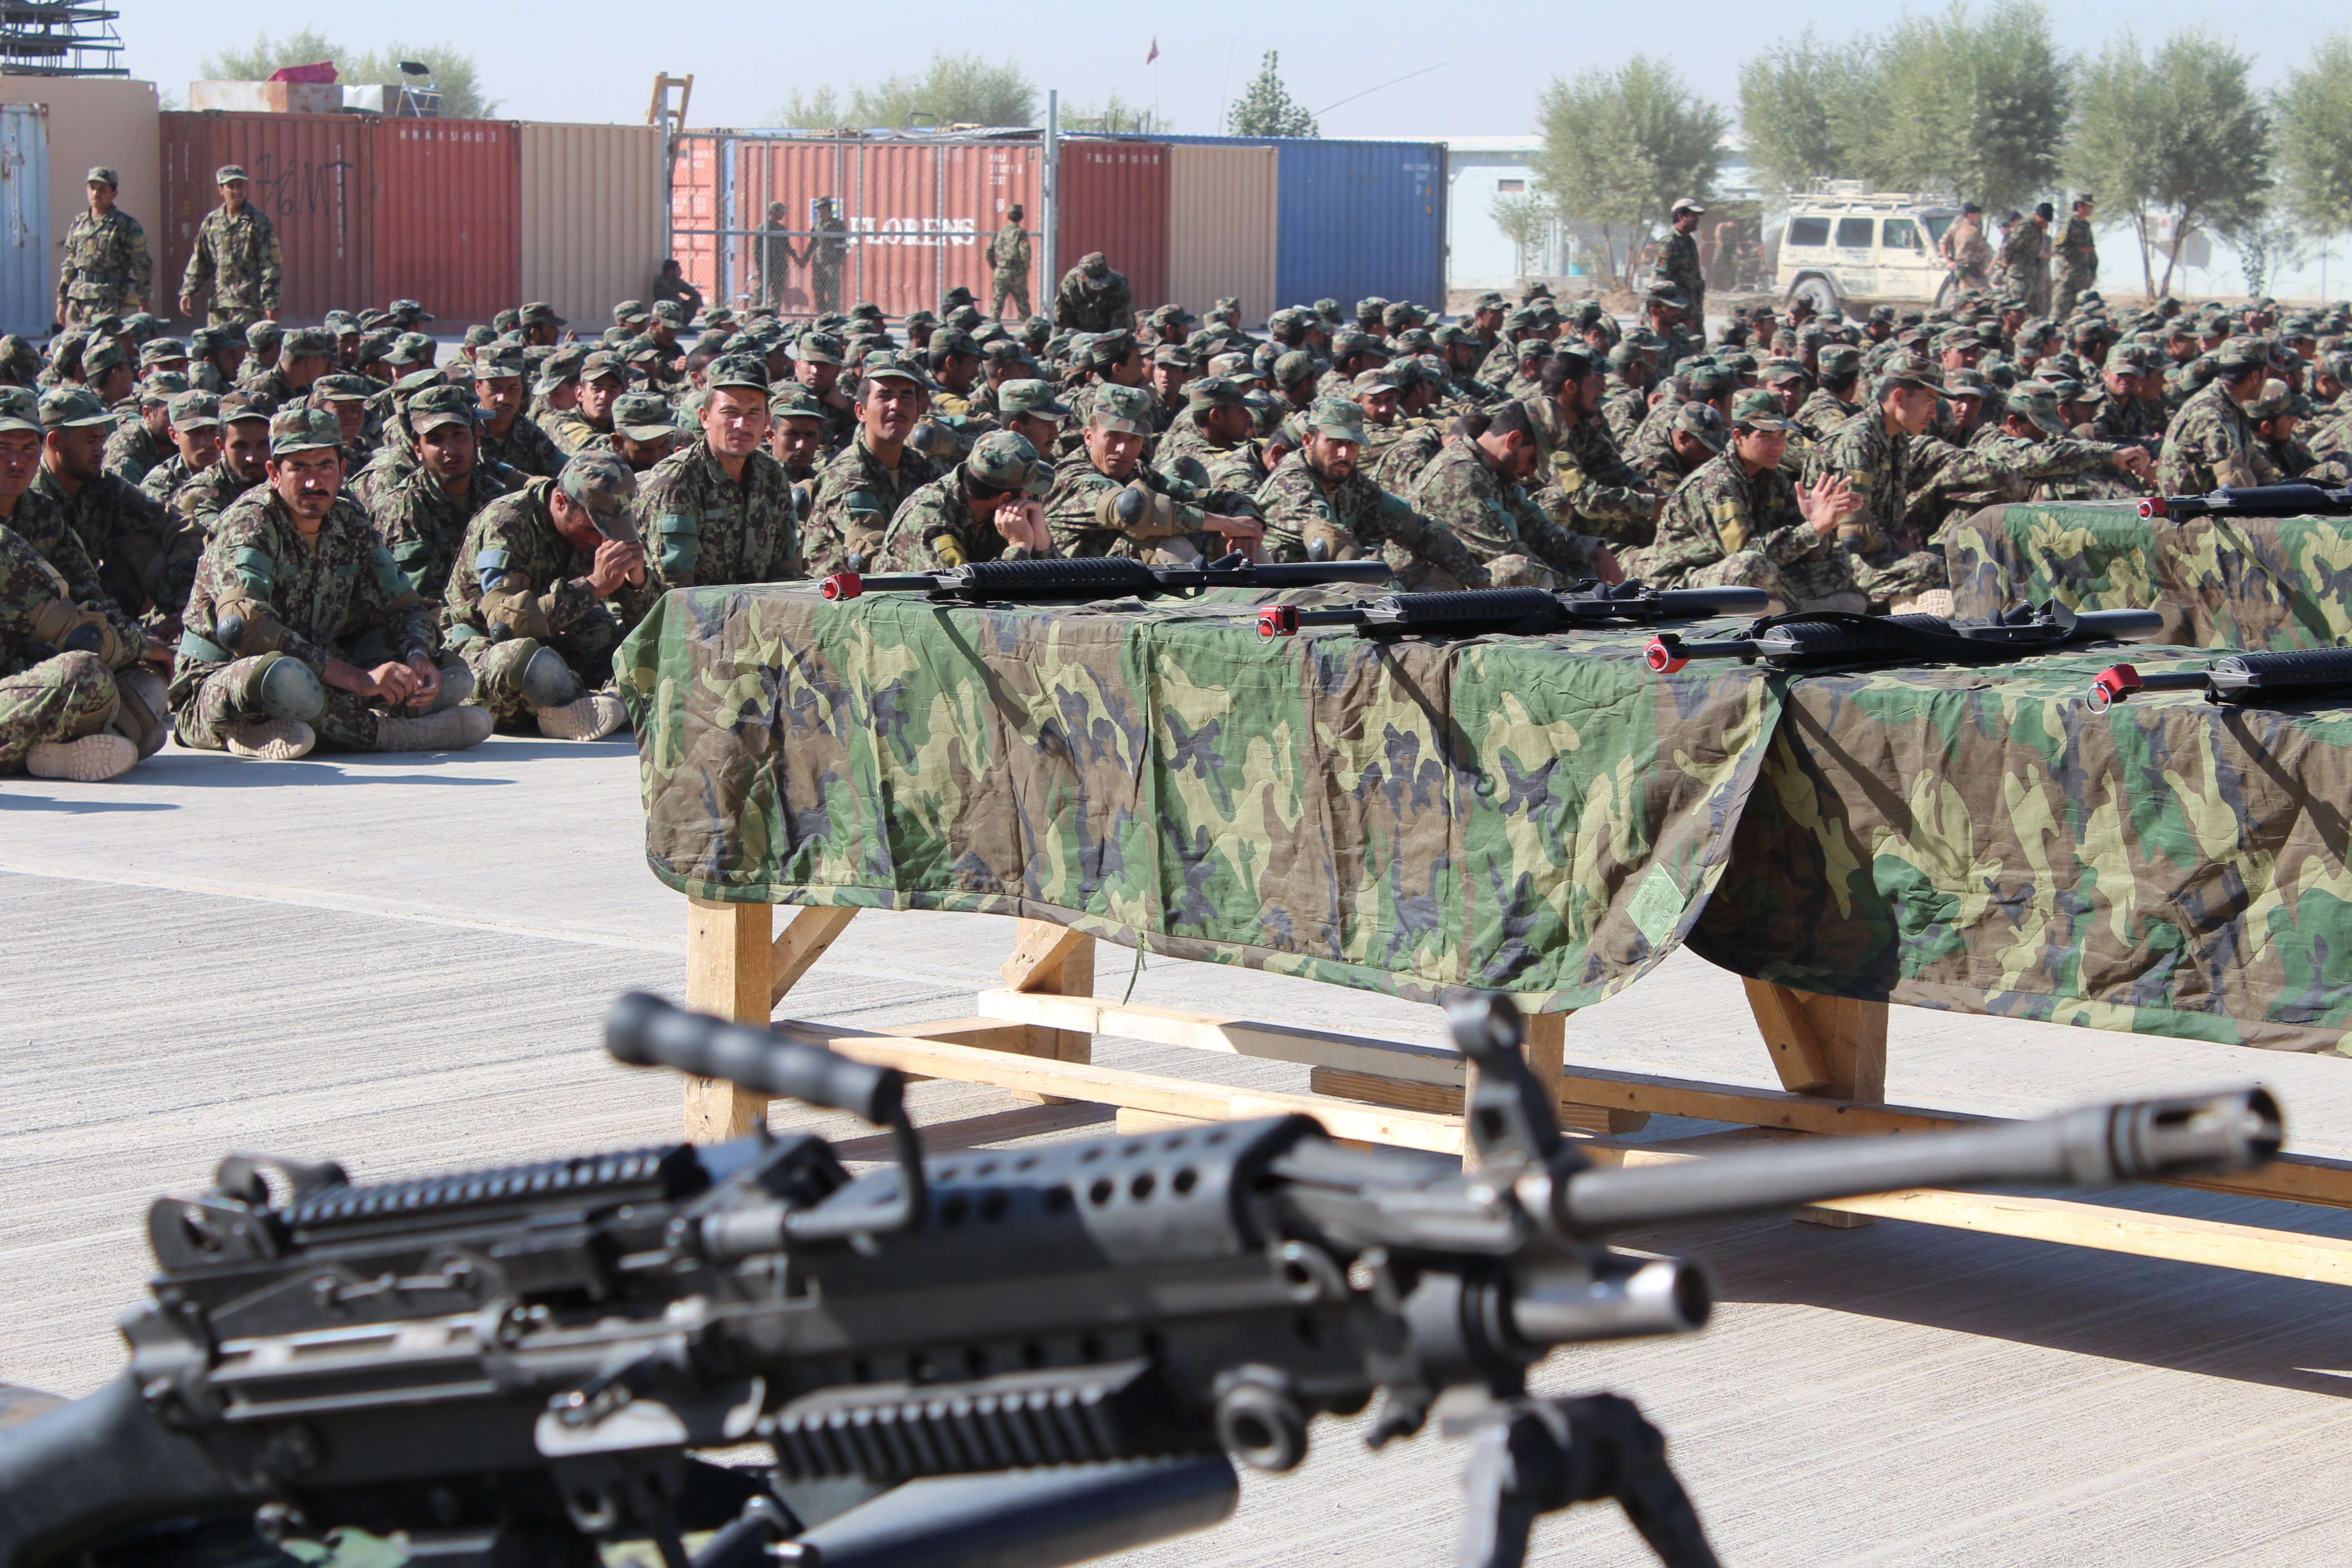 An oath is taken by a selection of weapons from the infantry group. When the Western soldiers leave, it will be up to the Afghan soldiers in the picture to establish security in the country. Photo: HOK, 2008